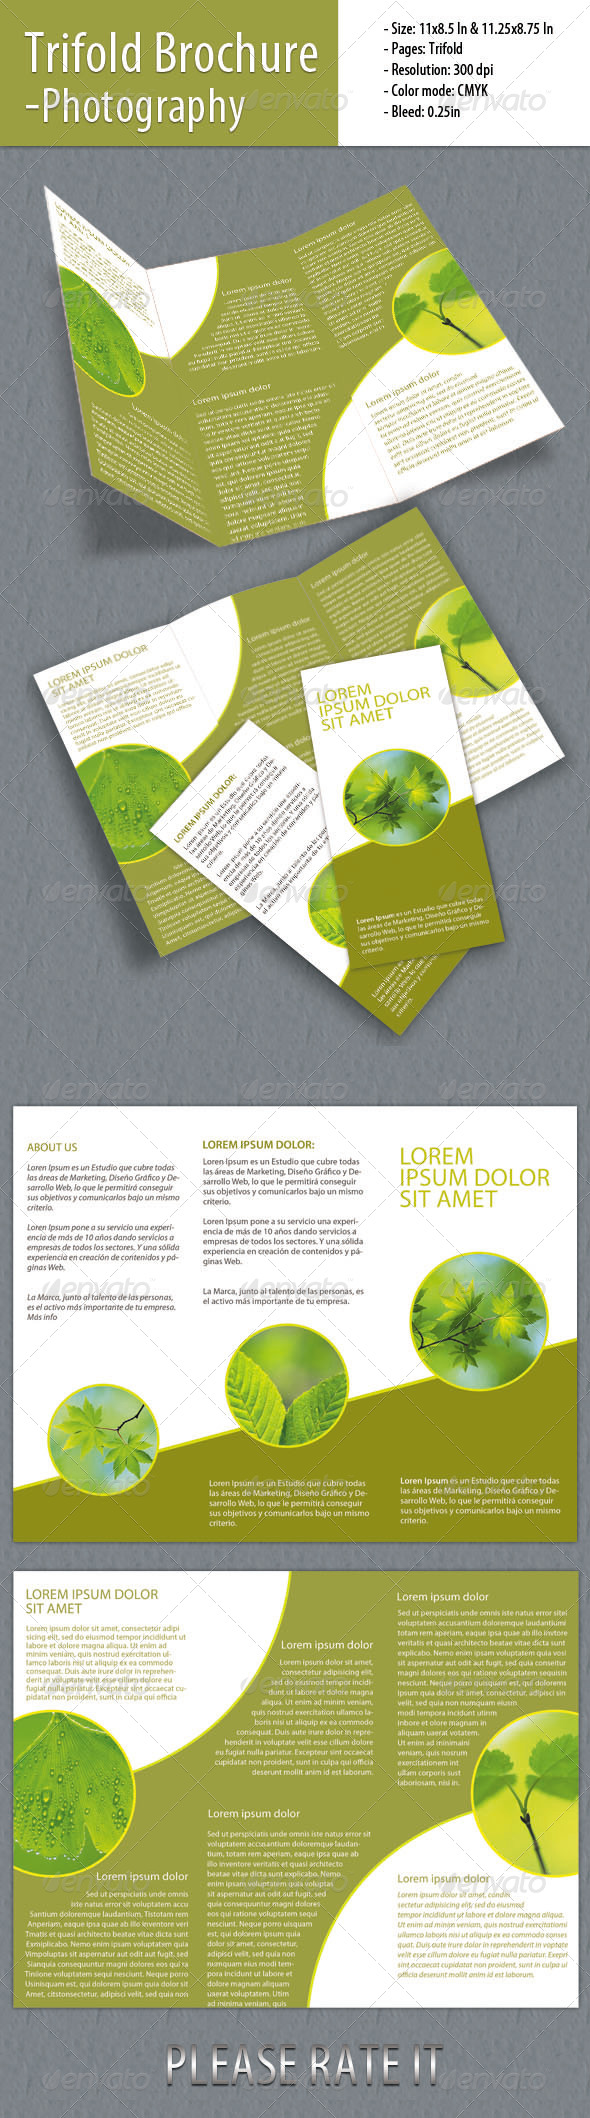 GraphicRiver Trifold Brochure for Green Company 4458498